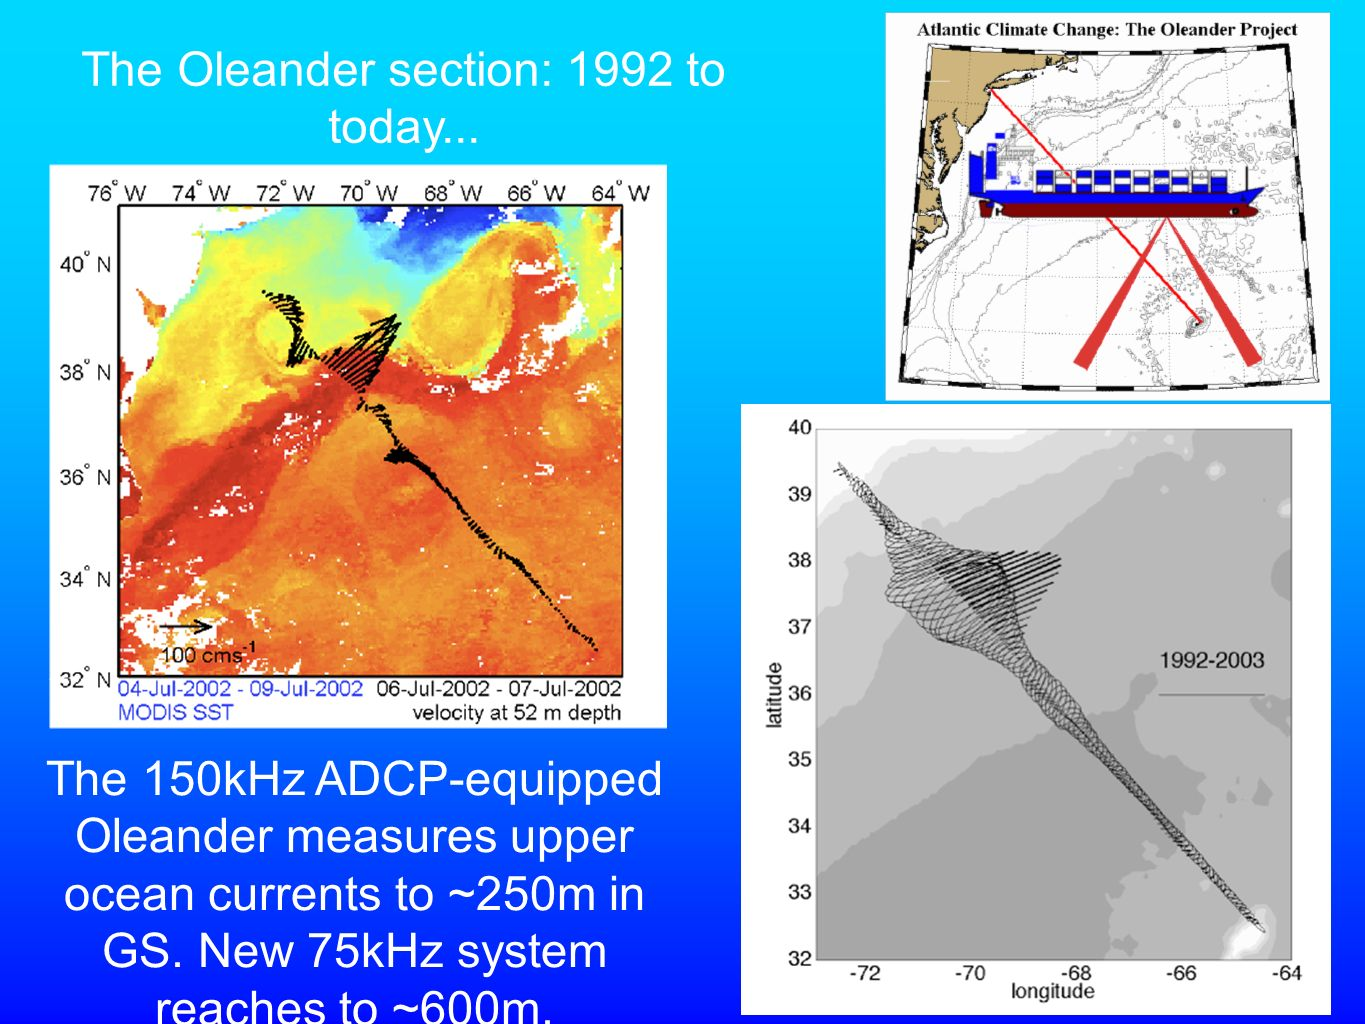 The 150kHz ADCP-equipped Oleander measures upper ocean currents to ~250m in GS.